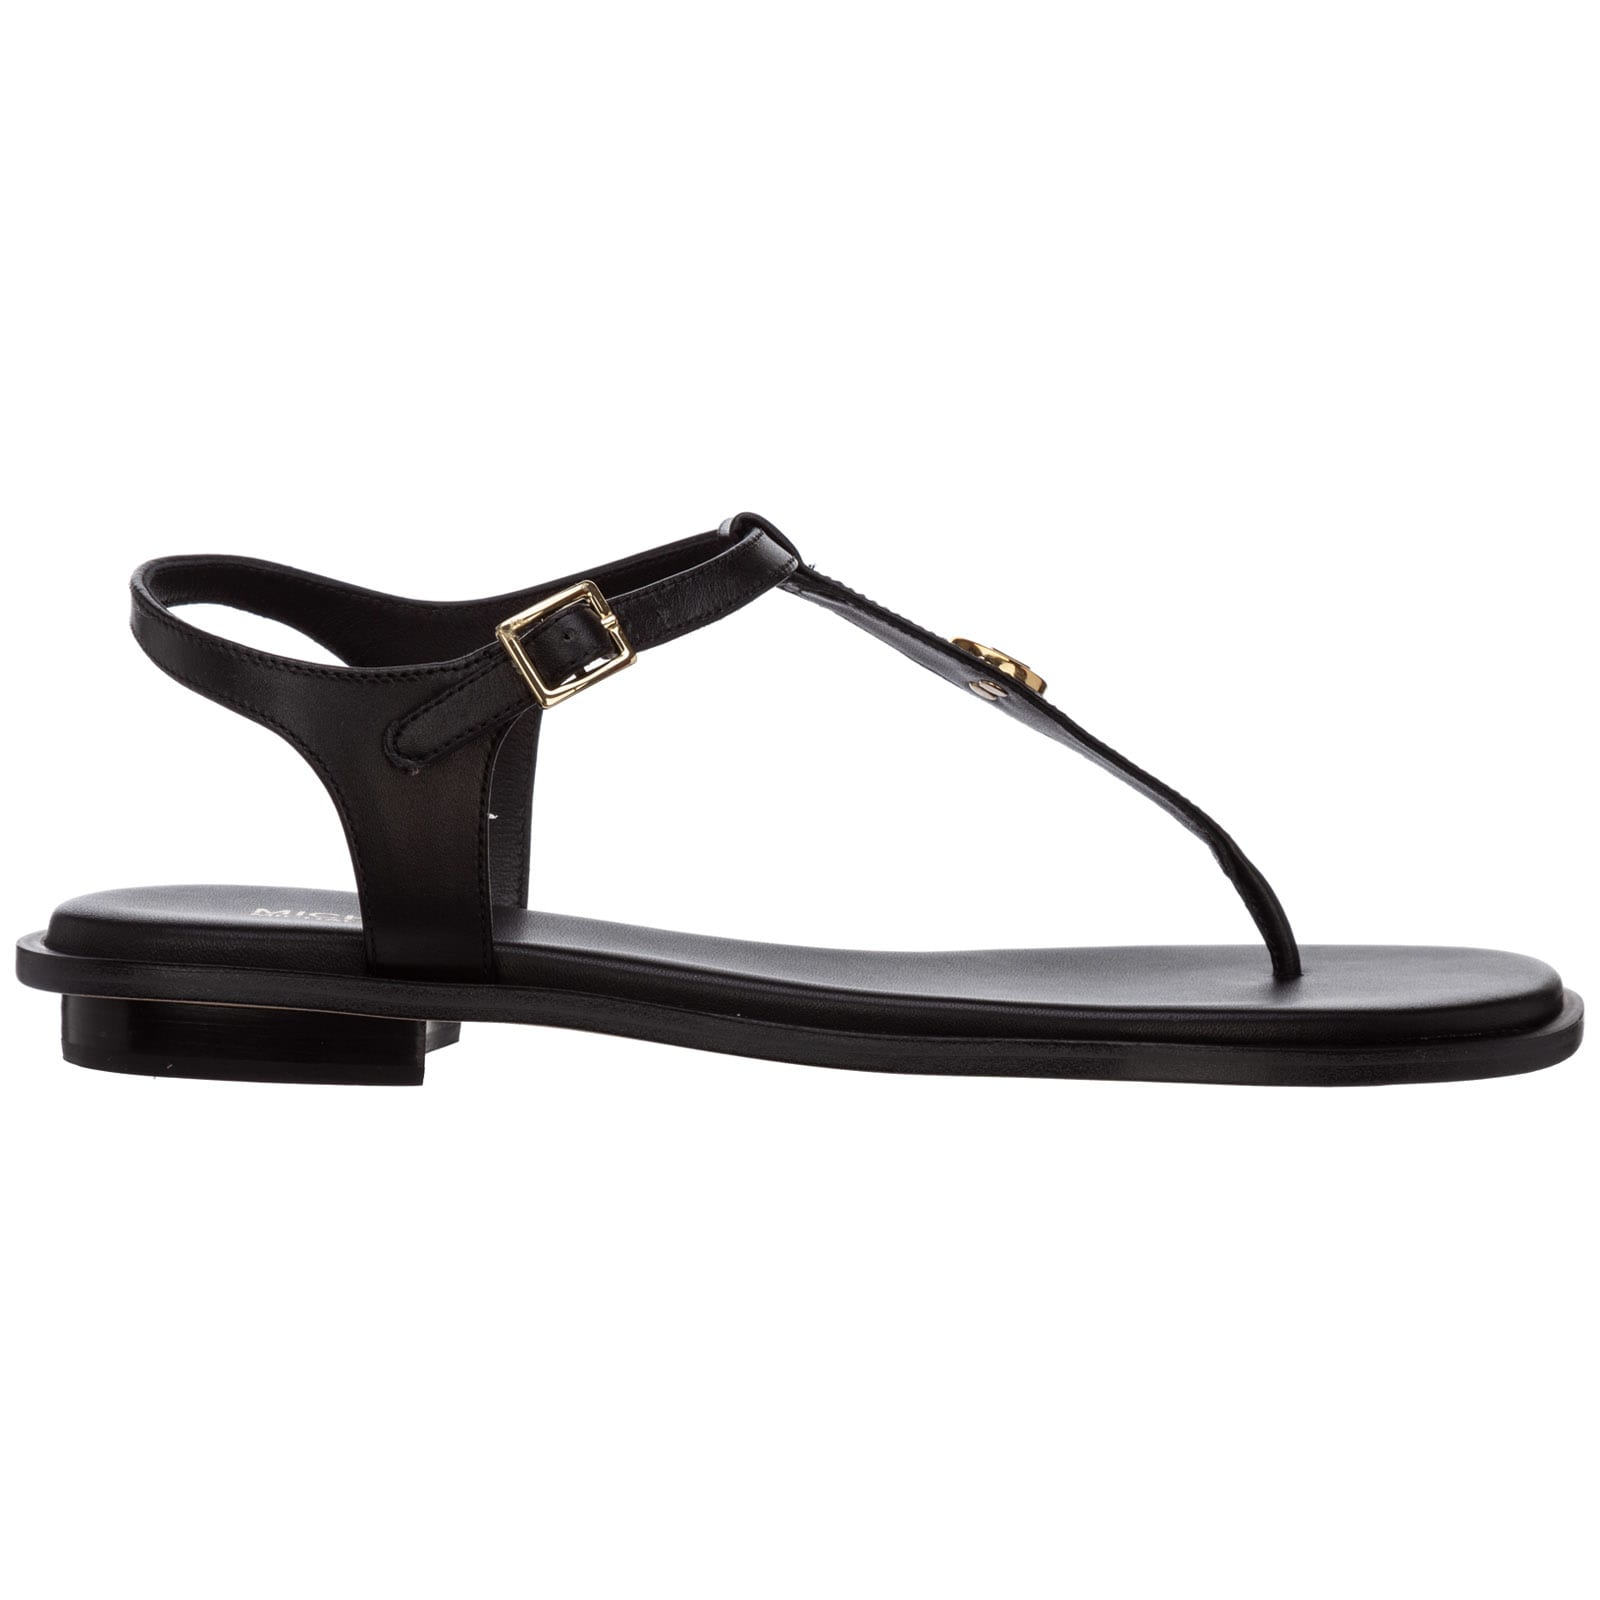 Buy Michael Kors Mallory T-bar Sandals online, shop Michael Kors shoes with free shipping